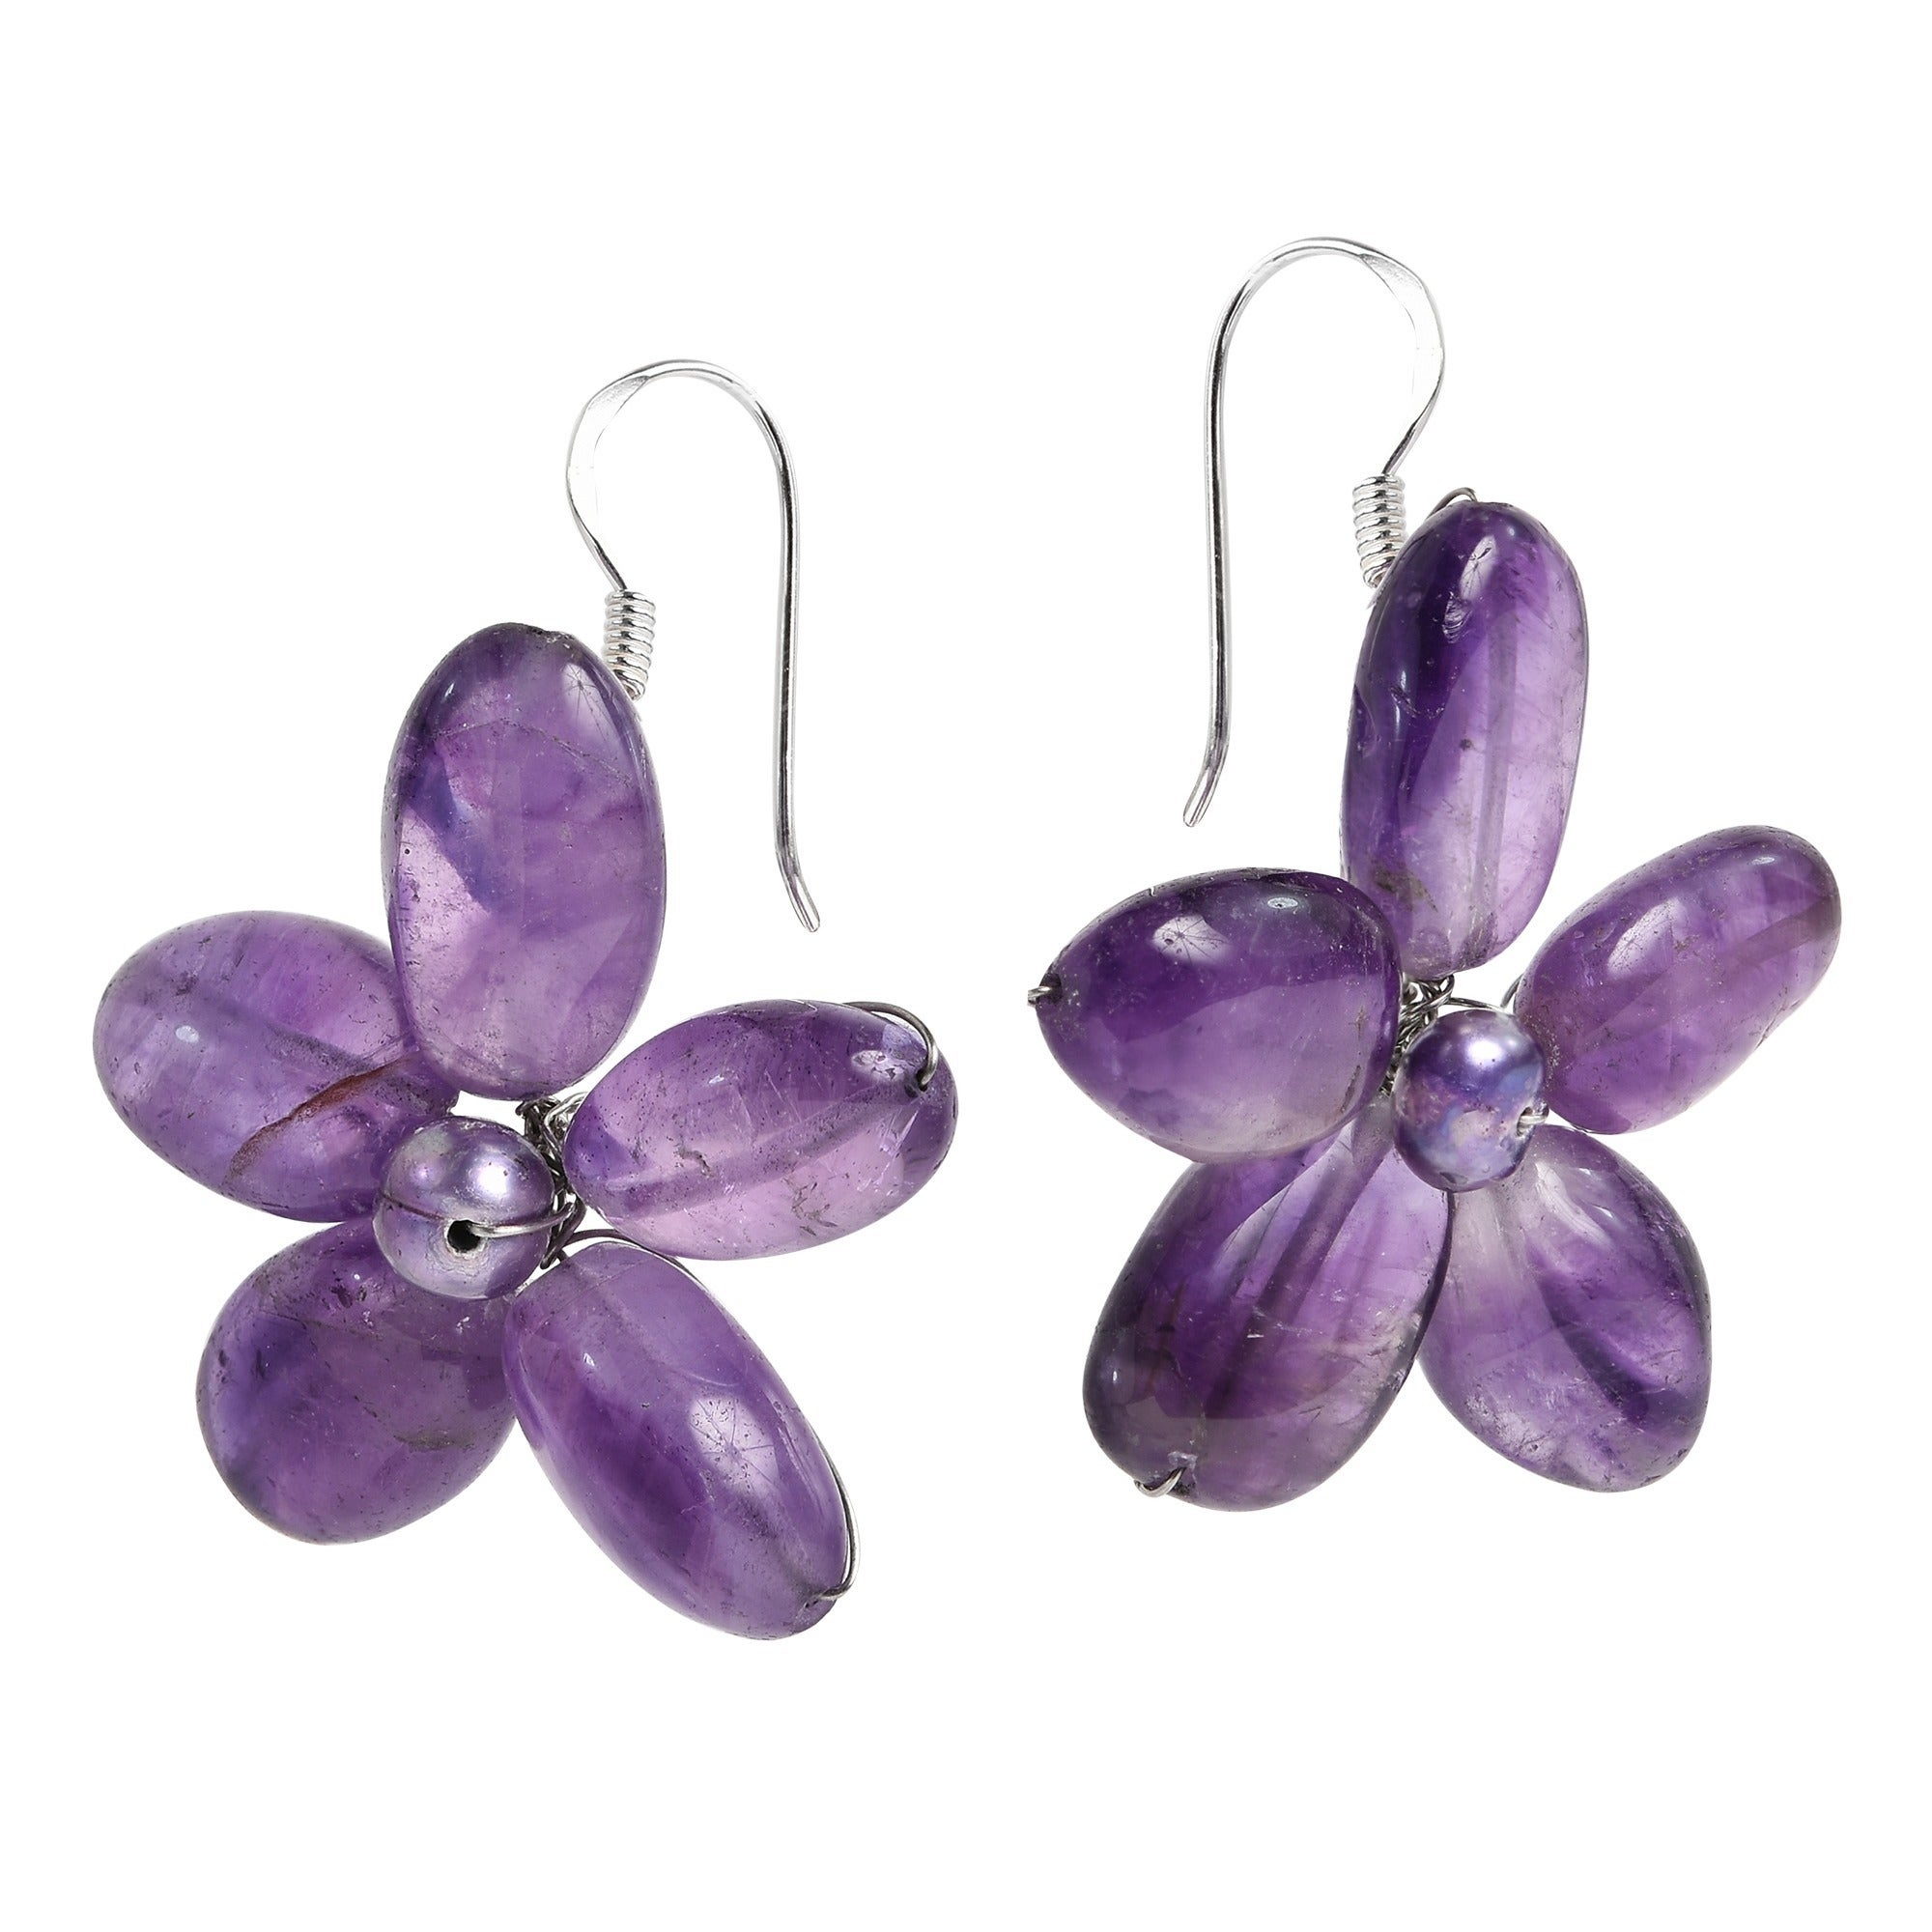 green for purple collections ooak flower earrings garden products reserved original inspirations marella white fairy